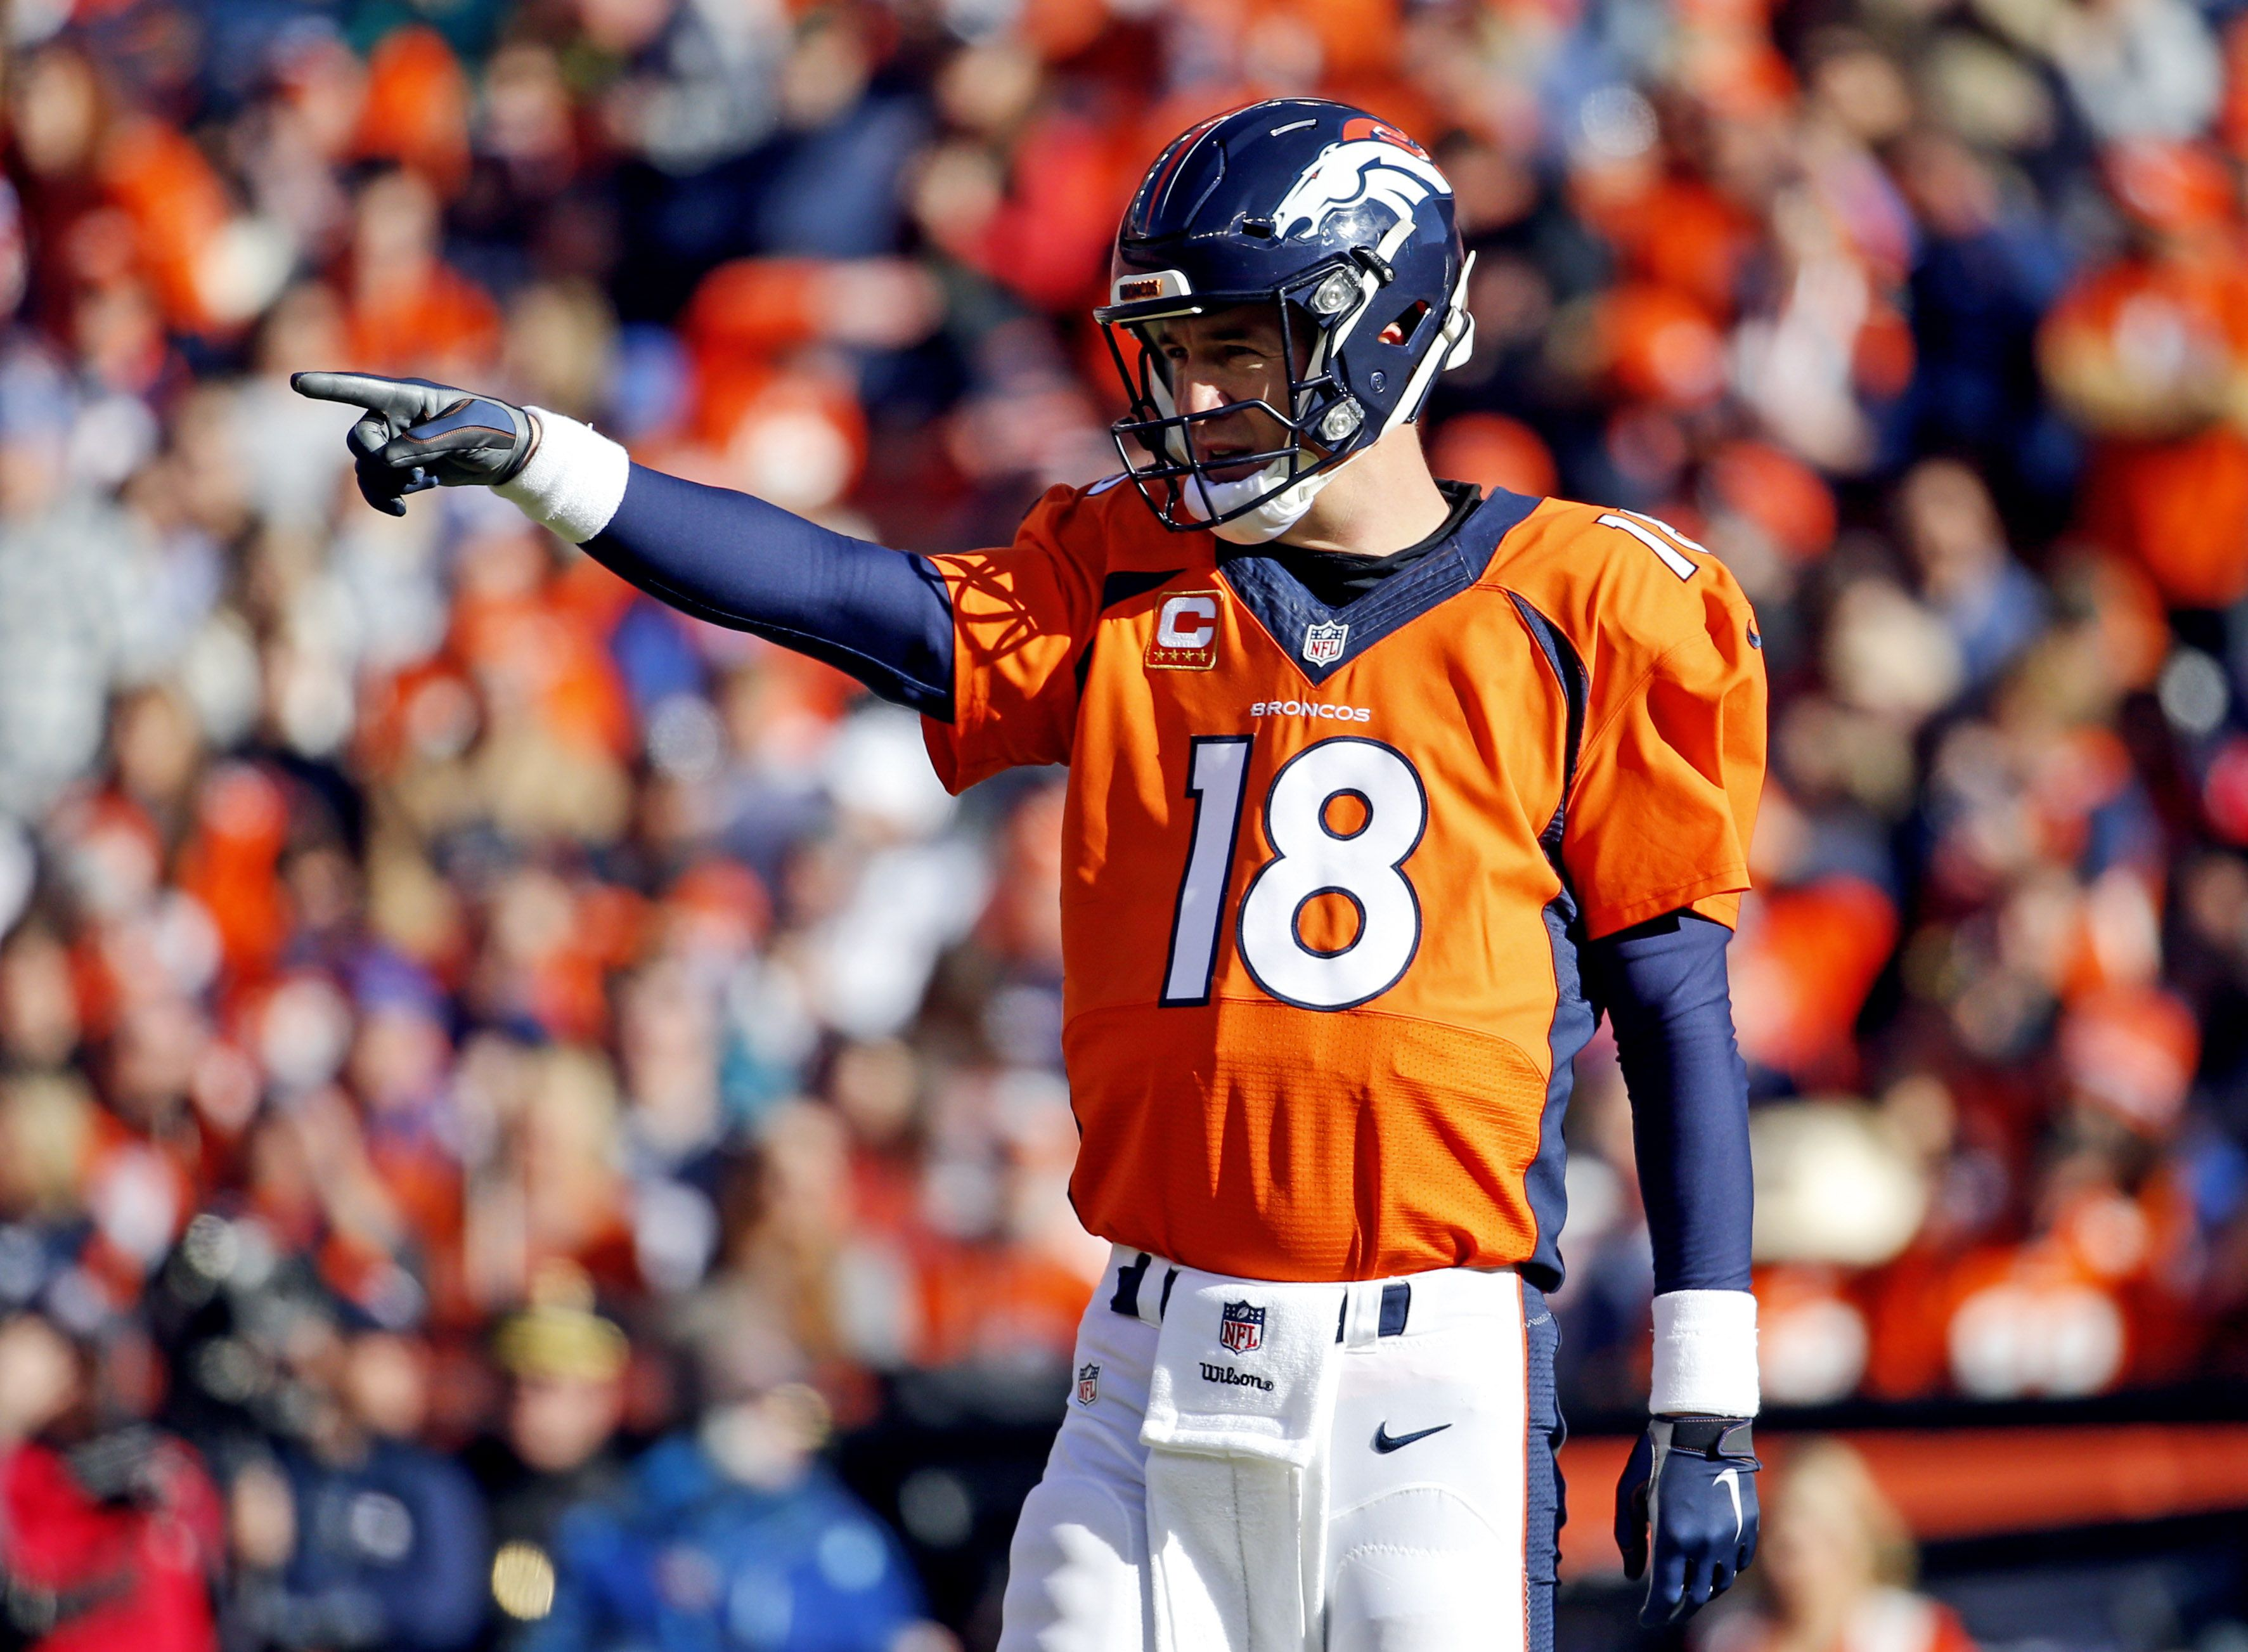 Hey Peyton, the NFL called it wants its ratings back